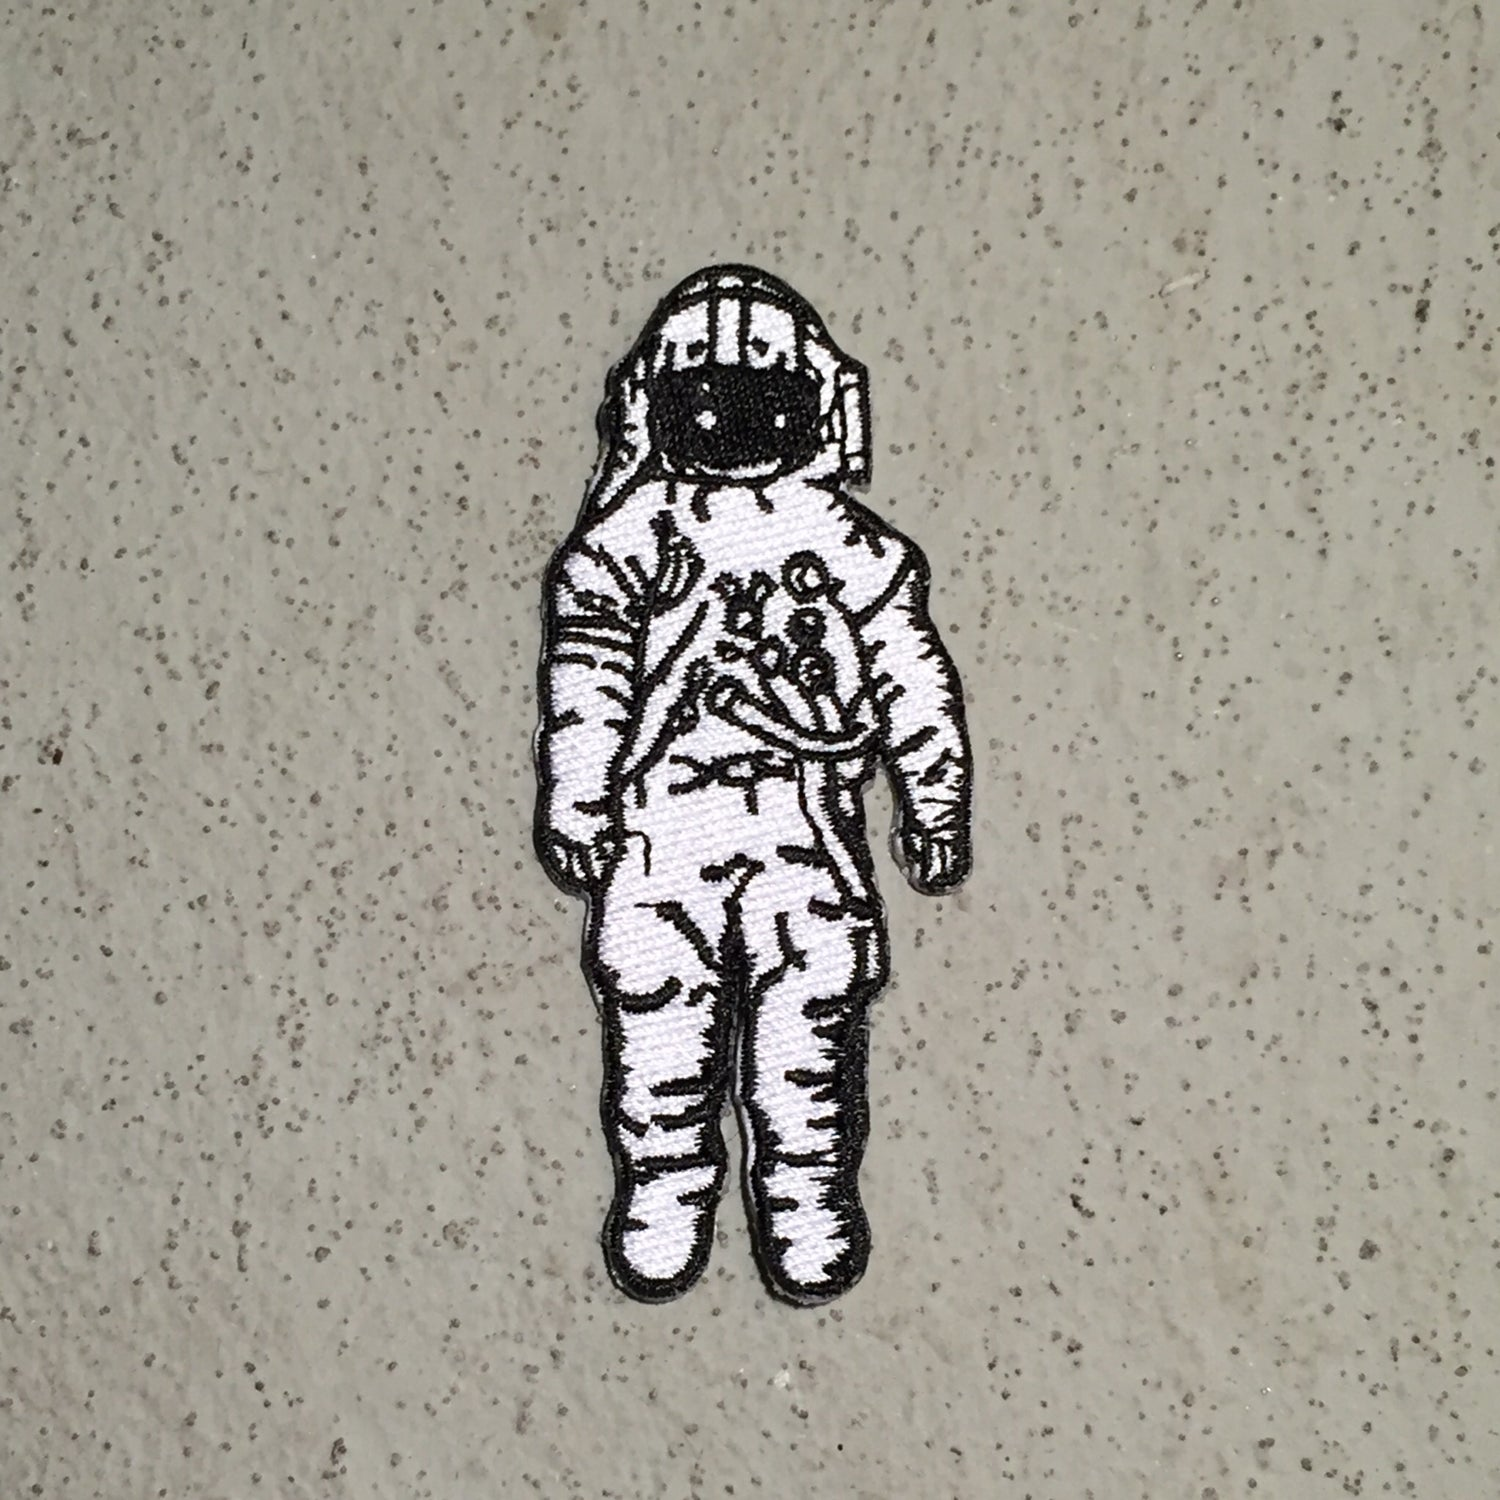 Image of Astronaut (PATCH)